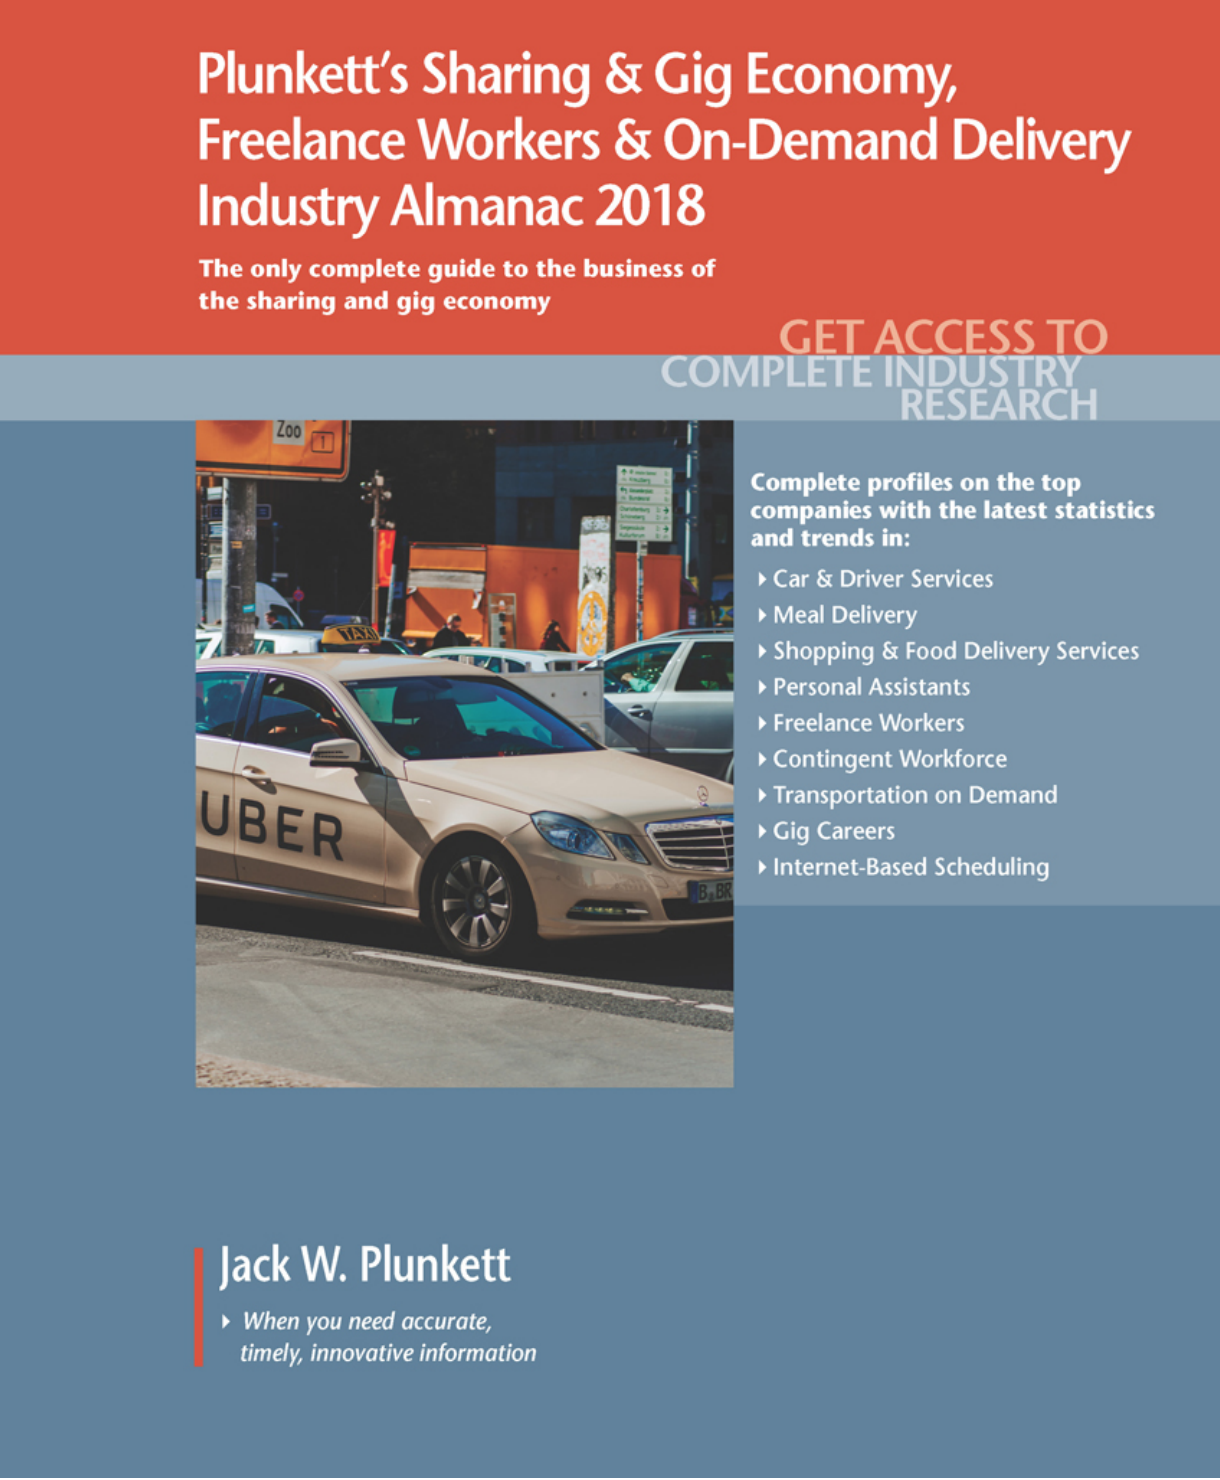 Cover of Plunkett's Sharing & Gig Economy ebook